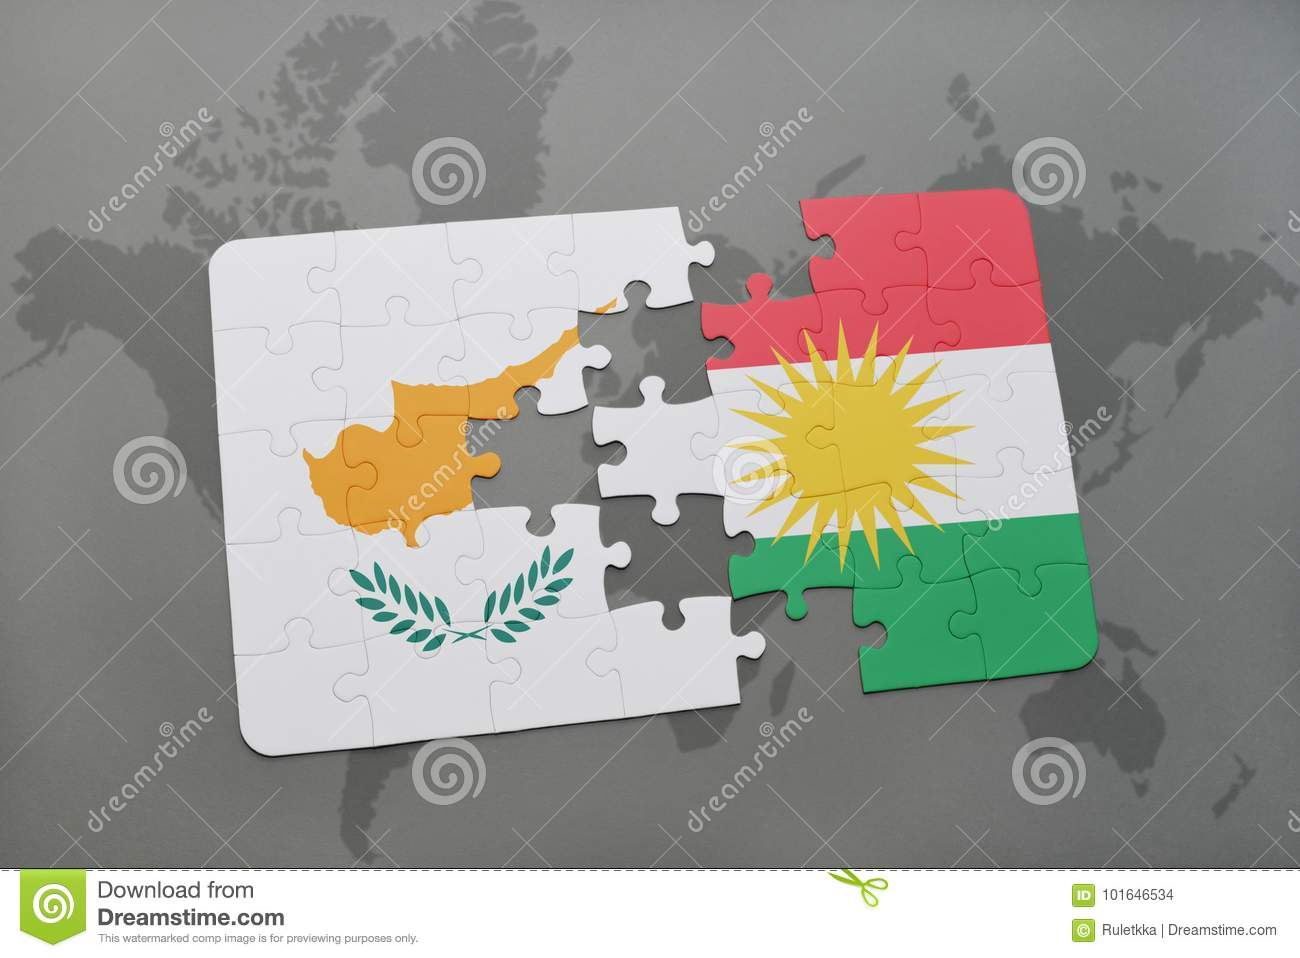 Puzzle With The National Flag Of Cyprus And Kurdistan On A World Map on israel world map, turkey world map, nyc world map, scotland world map, balkans world map, lebanon world map, serbia world map, golan heights world map, mali world map, germany world map, rwanda world map, gaza on world map, south ossetia world map, palestine world map, george world map, kobani world map, taiwan world map, iceland world map, kazakhstan world map, chad world map,